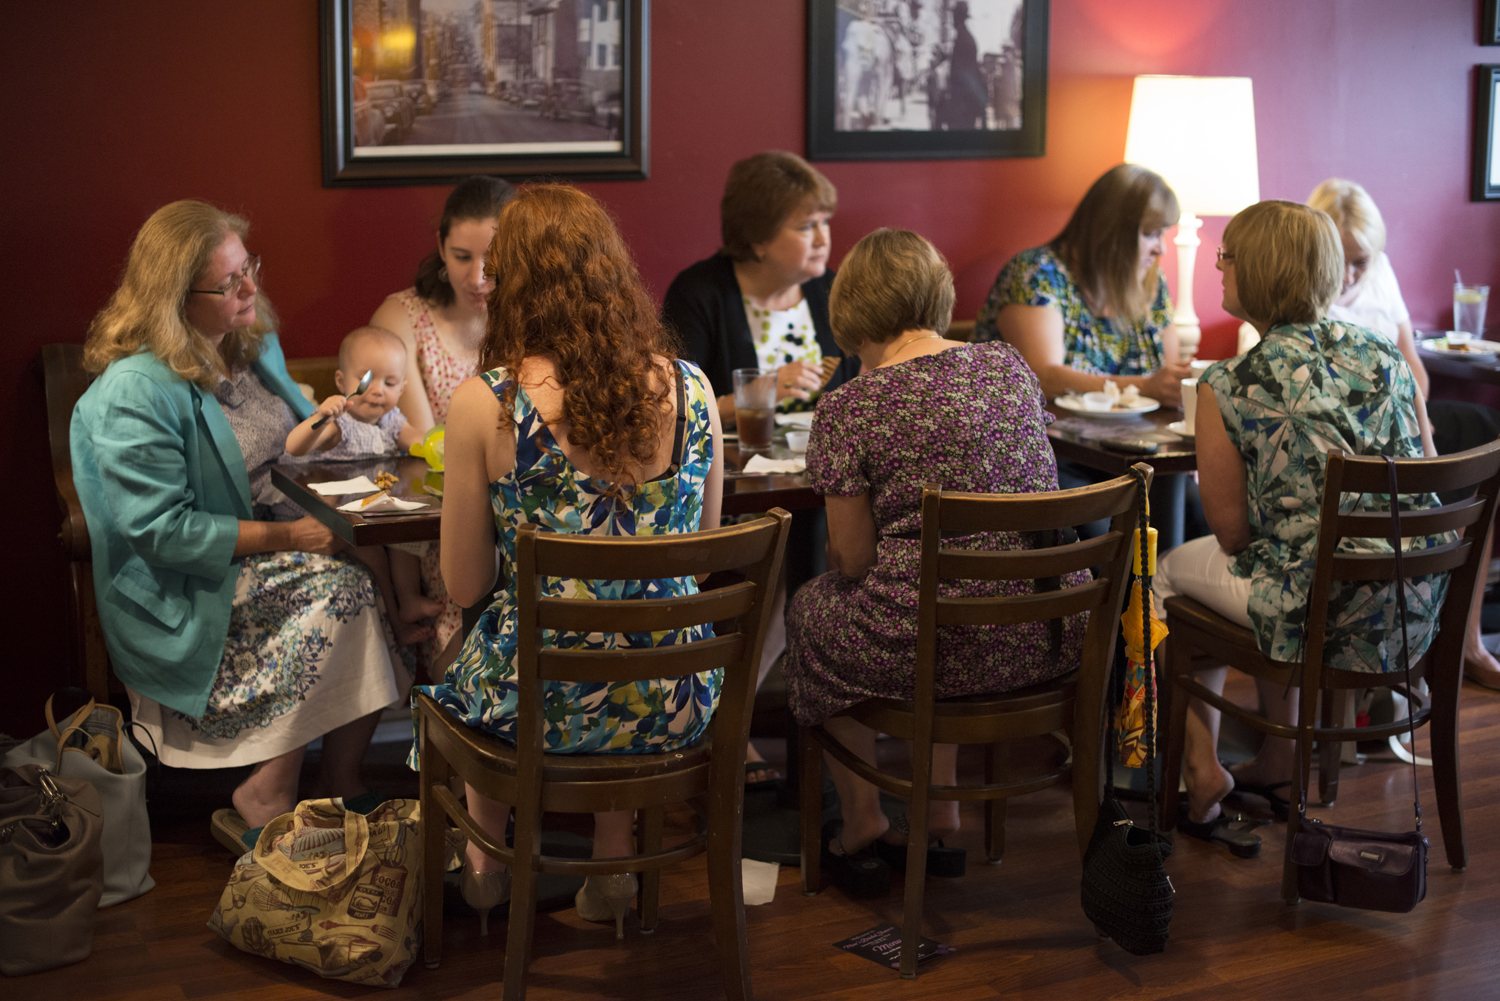 Bridal shower at The By and By in Downtown Staunton, Virginia